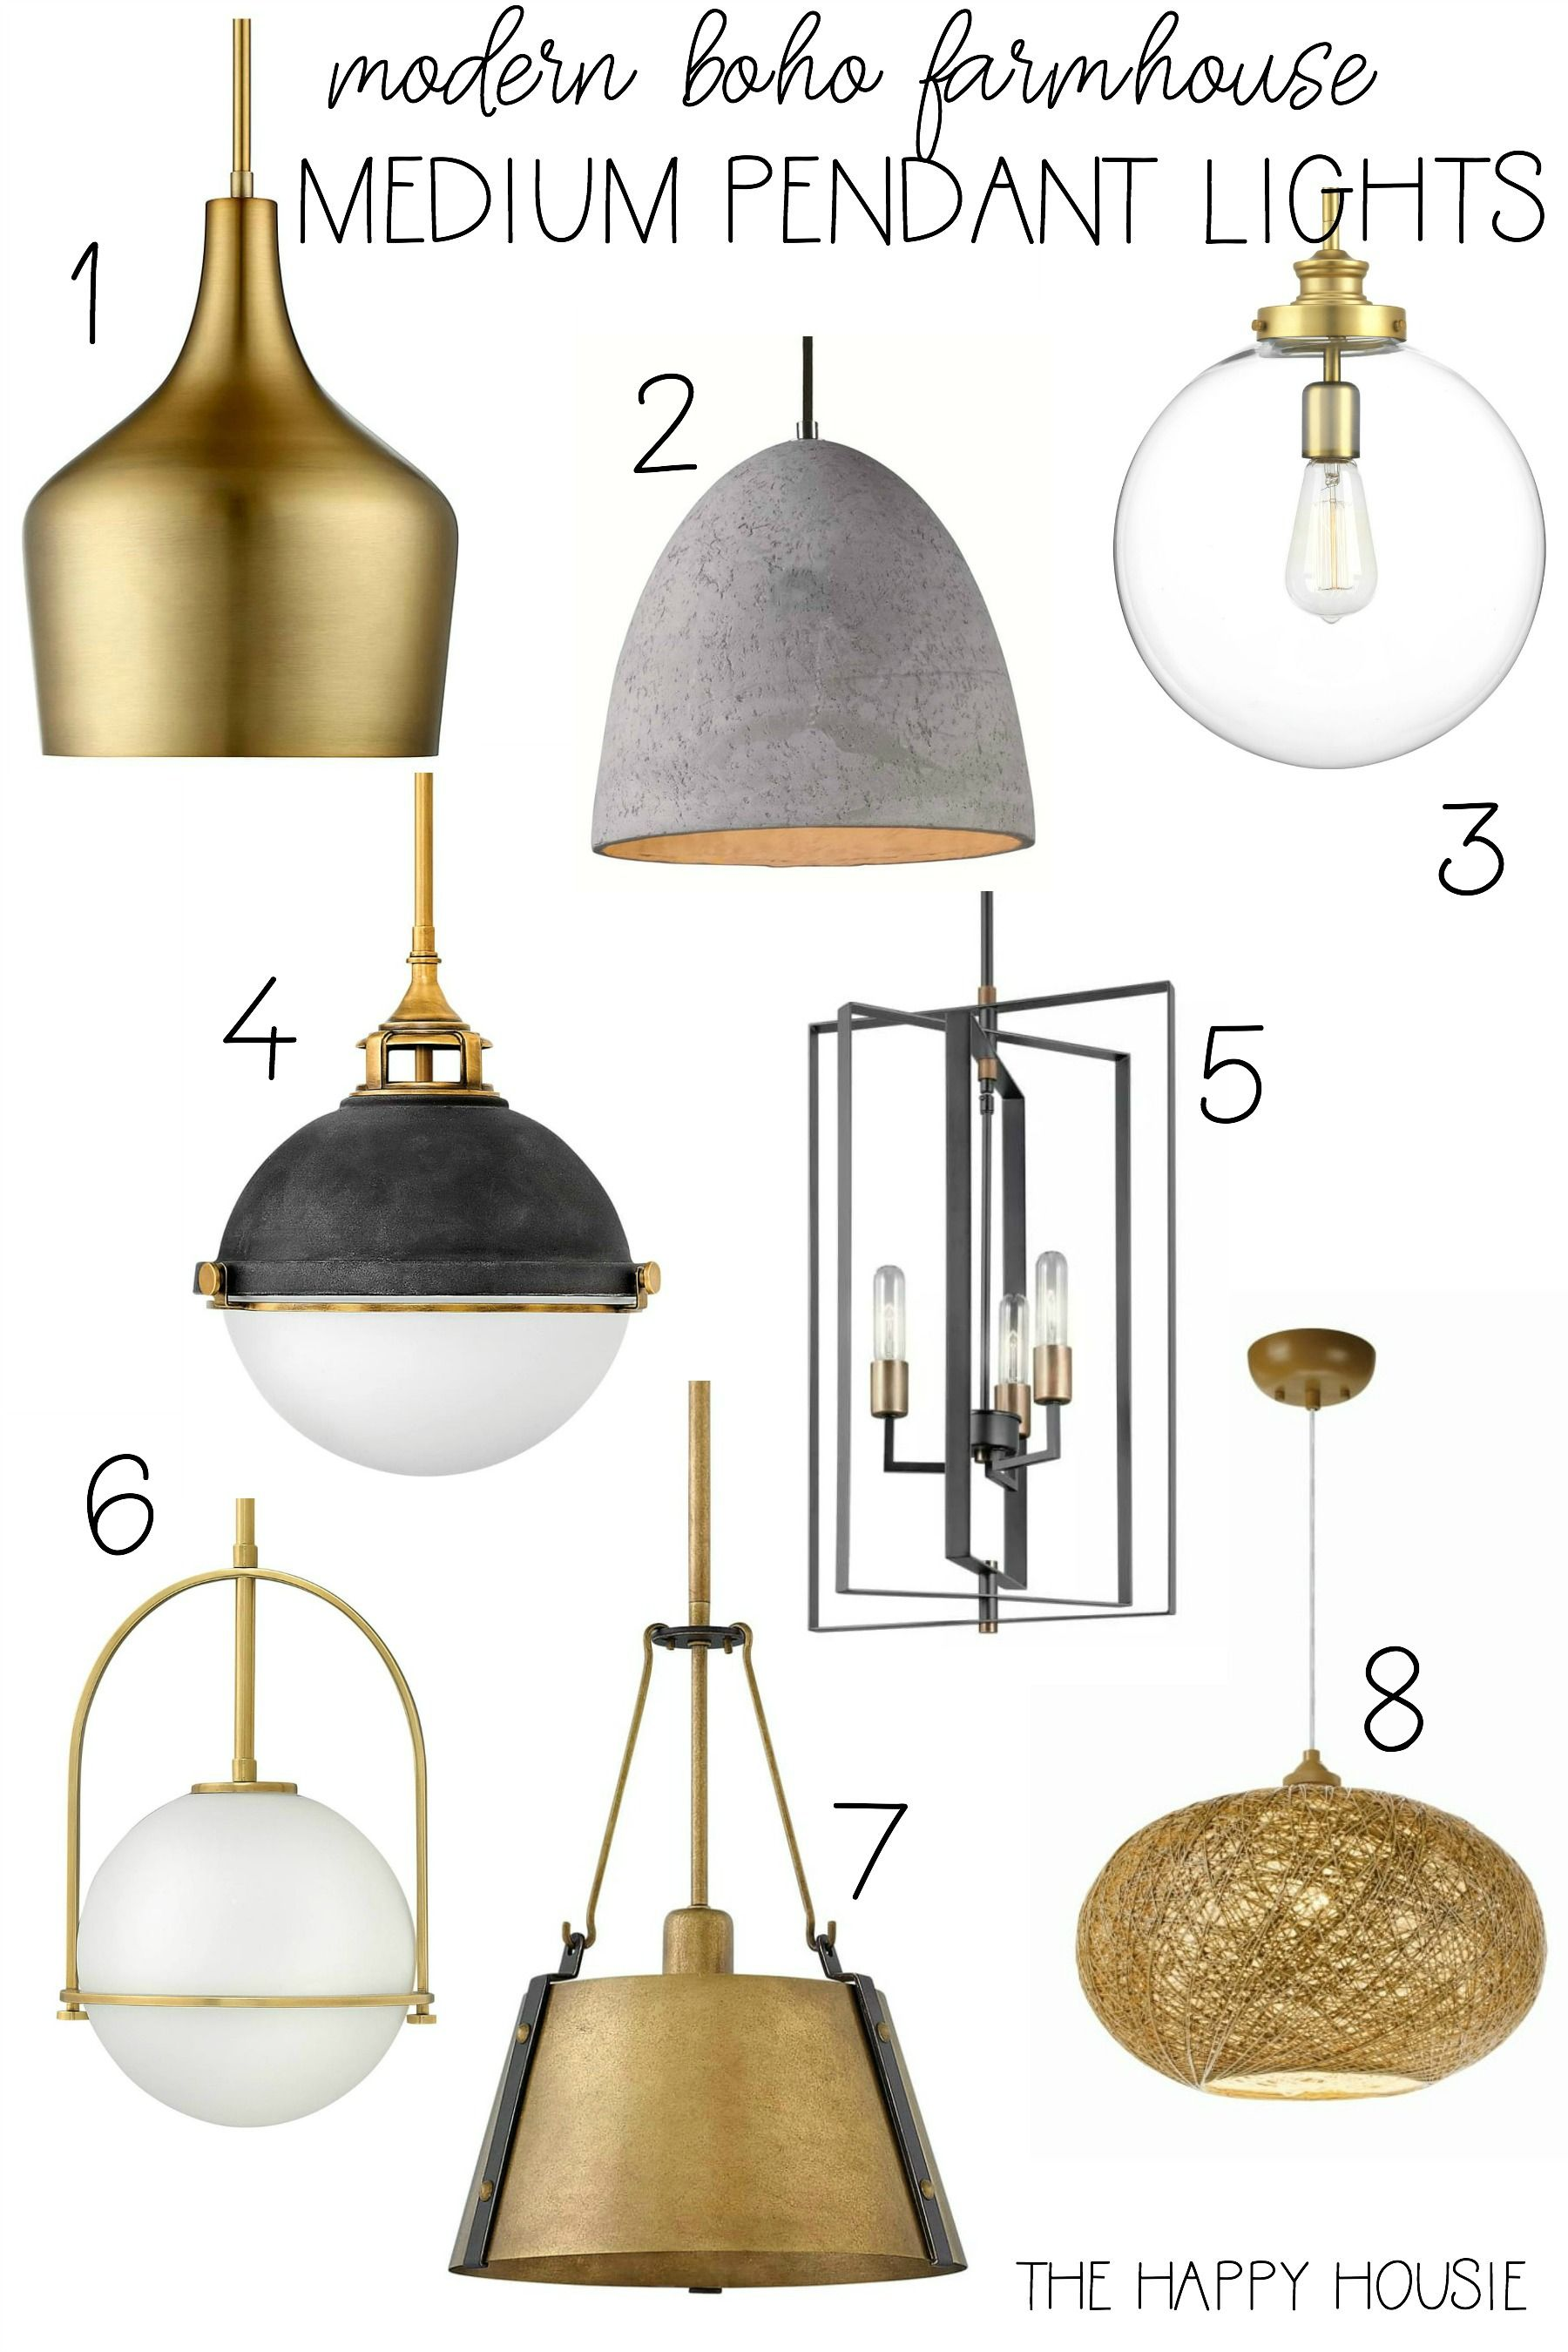 Choosing The Right Lighting Combination For Your Kitchen Renovation The Happy Housie In 2020 Farmhouse Light Fixtures Living Room Light Fixtures Dining Room Light Fixtures